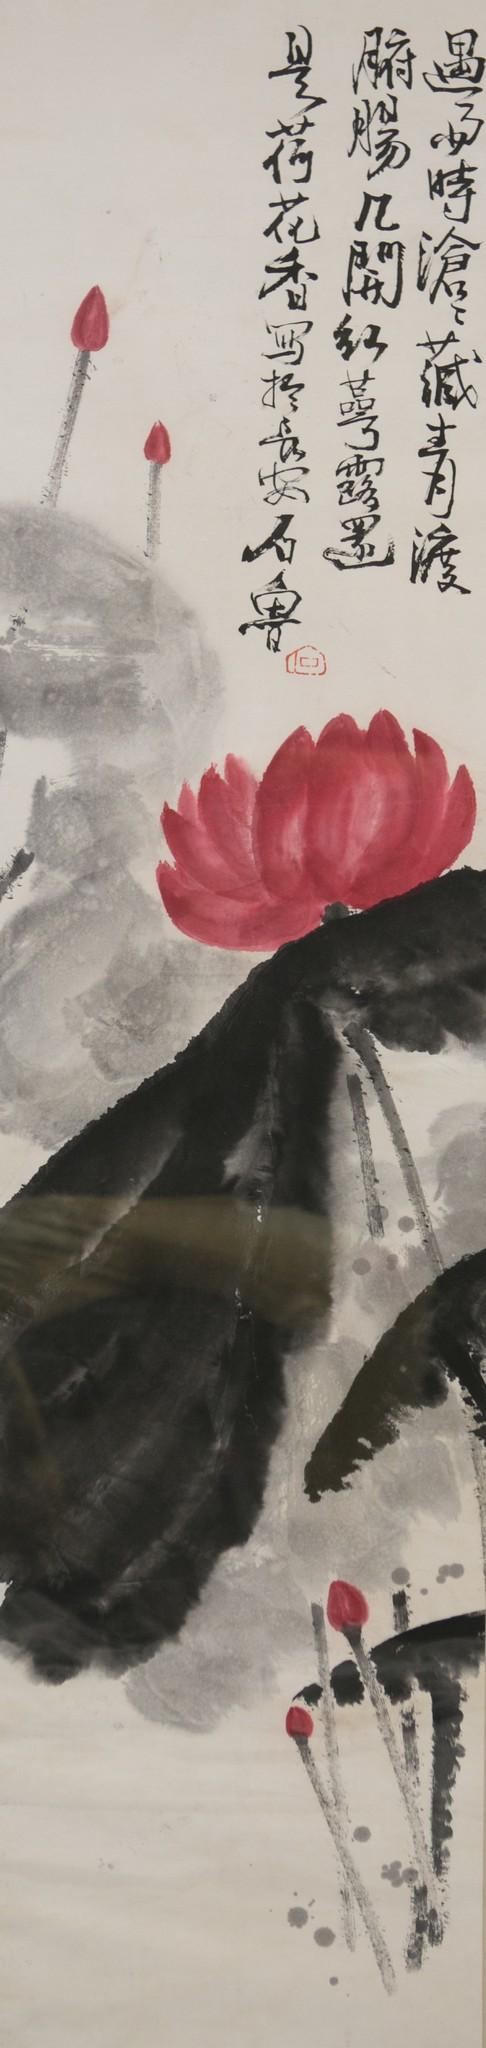 Chinese framed watercolor painting of a lotus, buds, leaves, with extensive calligraphy upper right, 66 1/2